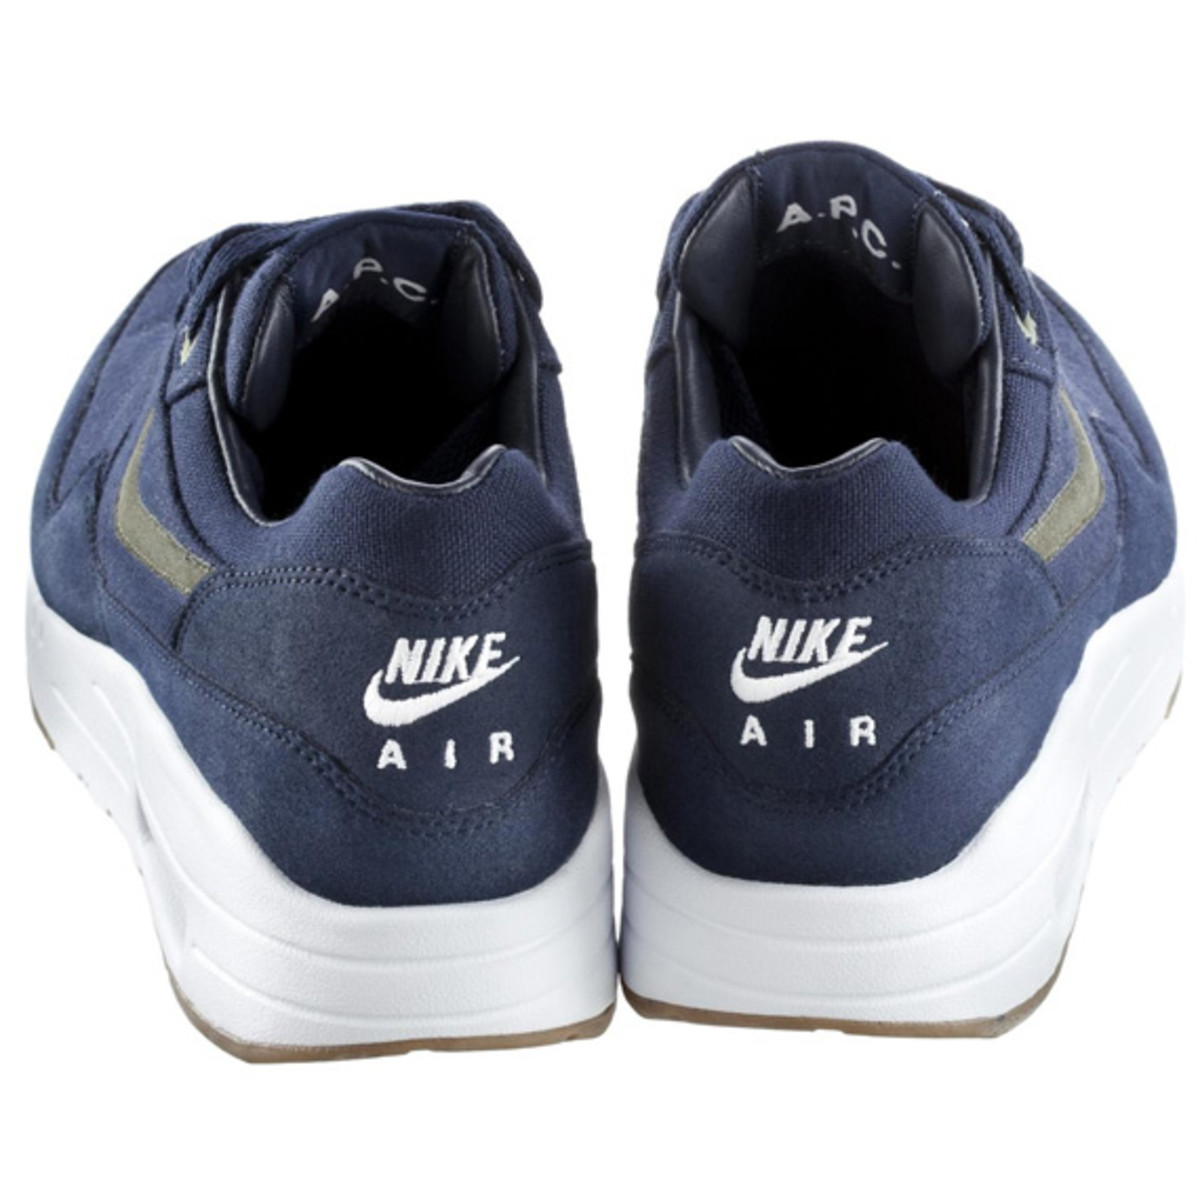 apc-nike-air-max-1-available-now-03